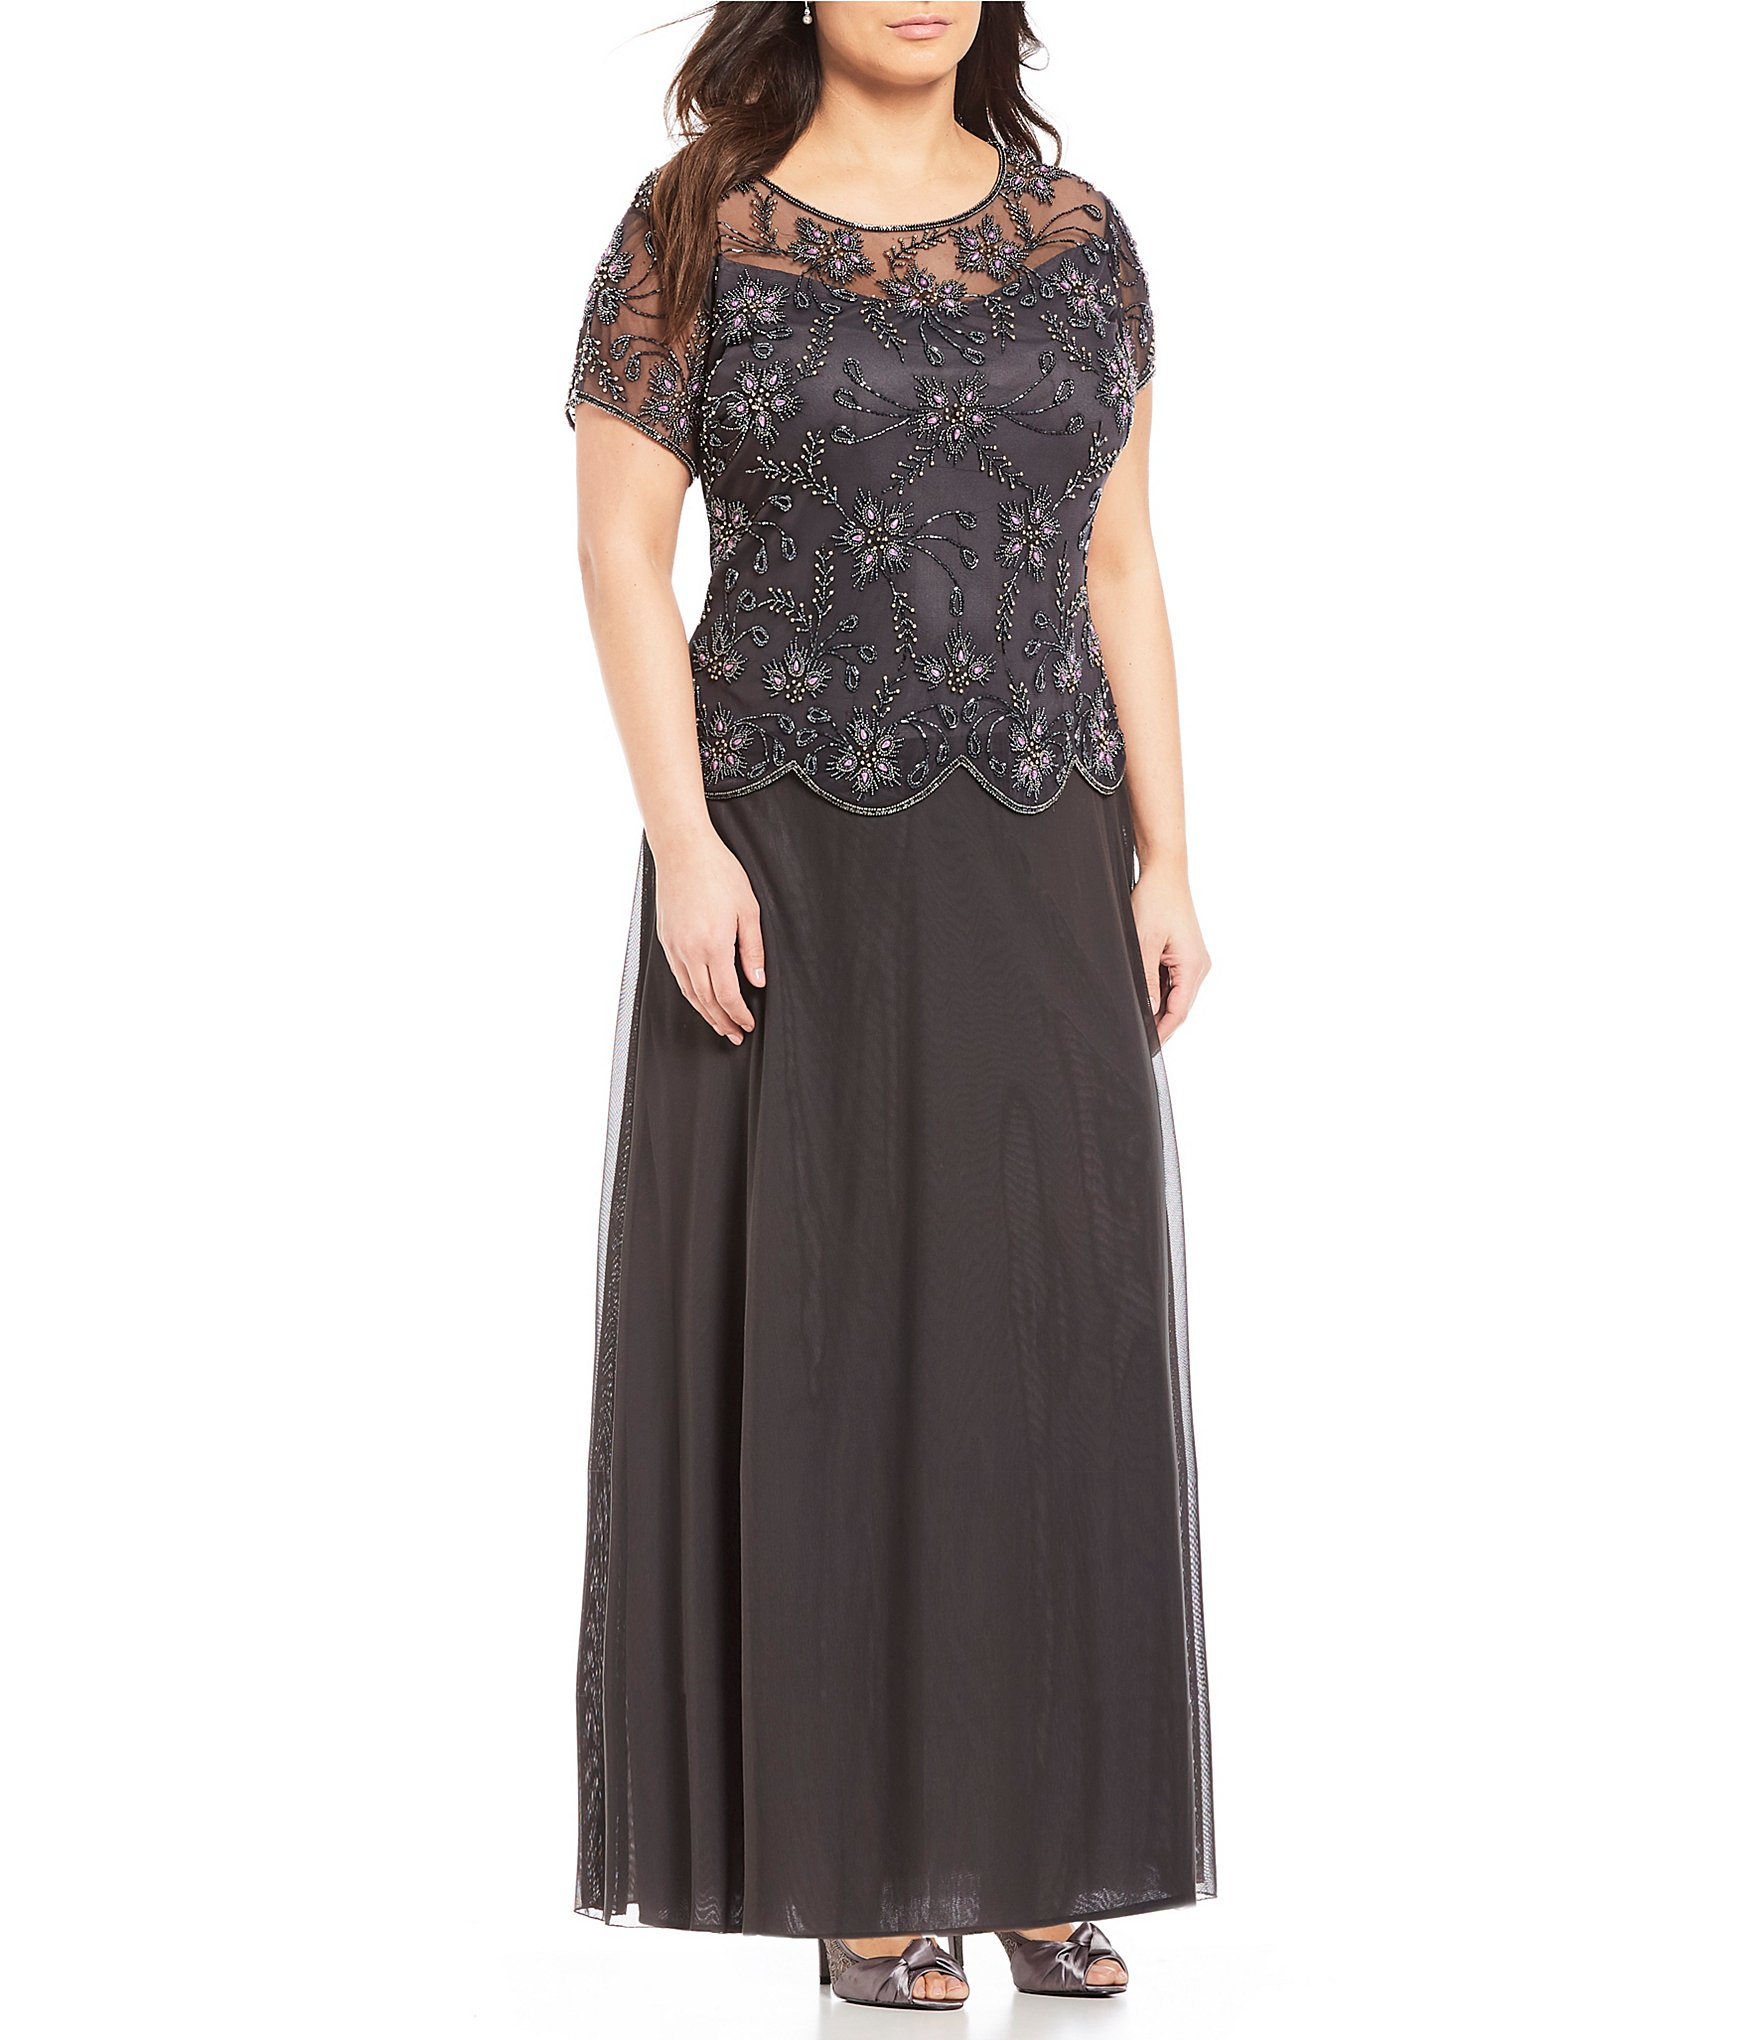 Plus-Size Formal Dresses & Gowns   Dilllards